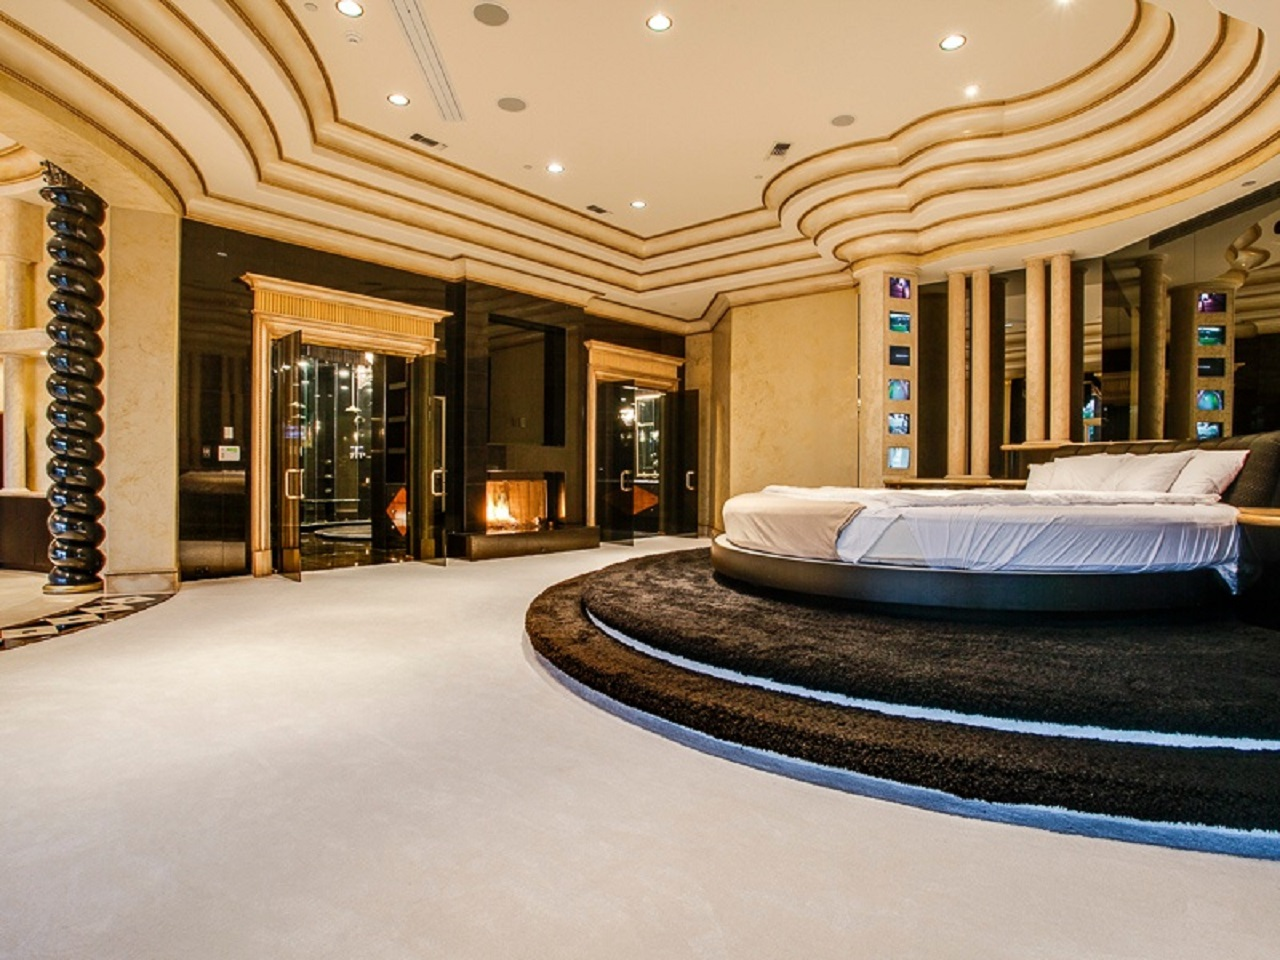 15 Luxurious Master Bedrooms With Round Beds - Interior ... on Luxury Master Bedroom  id=94611